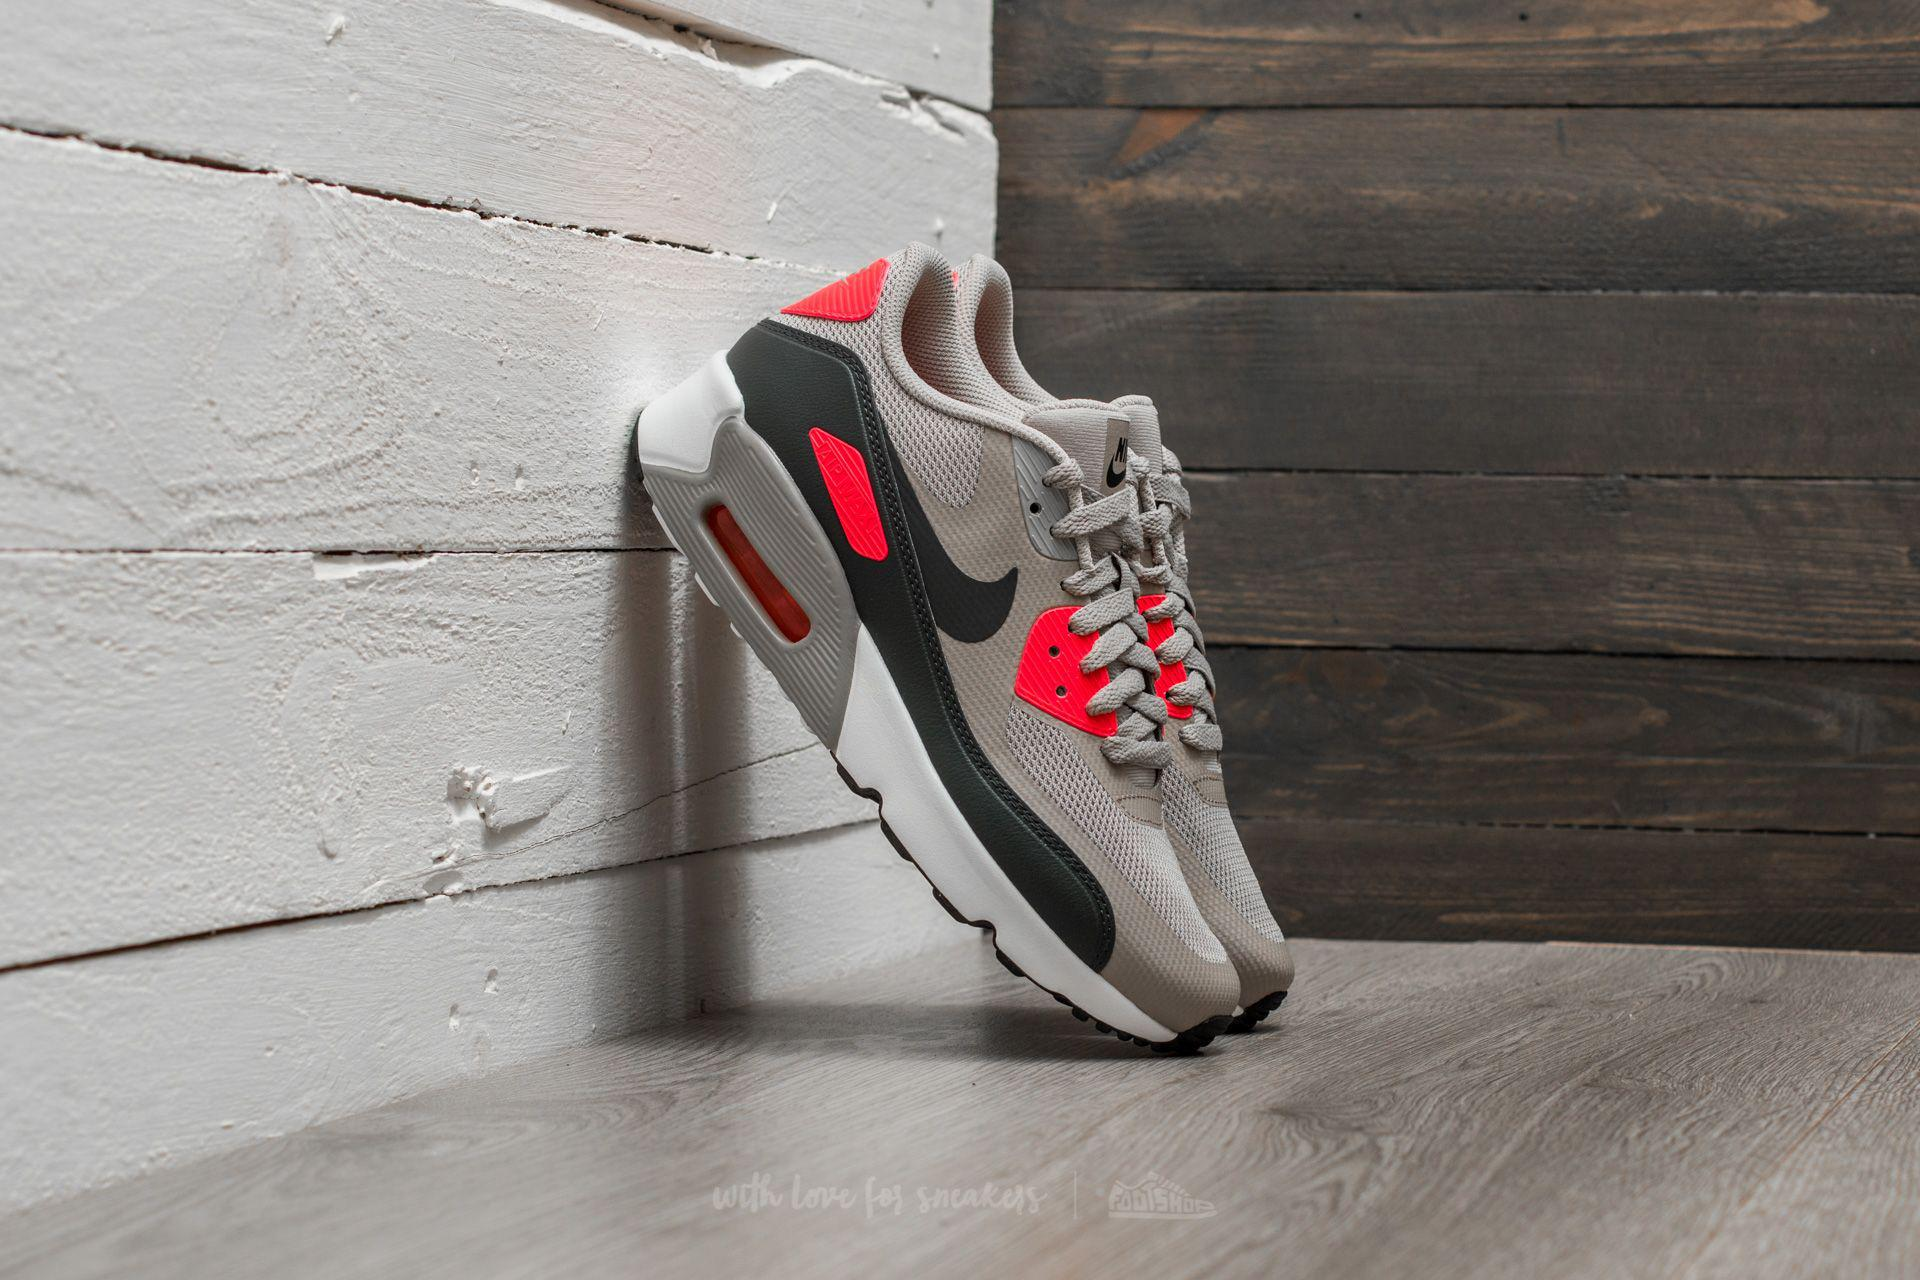 Lyst - Nike Air Max 90 Ultra 2.0 (gs) Cobblestone  Anthracite for Men 940517c9b3